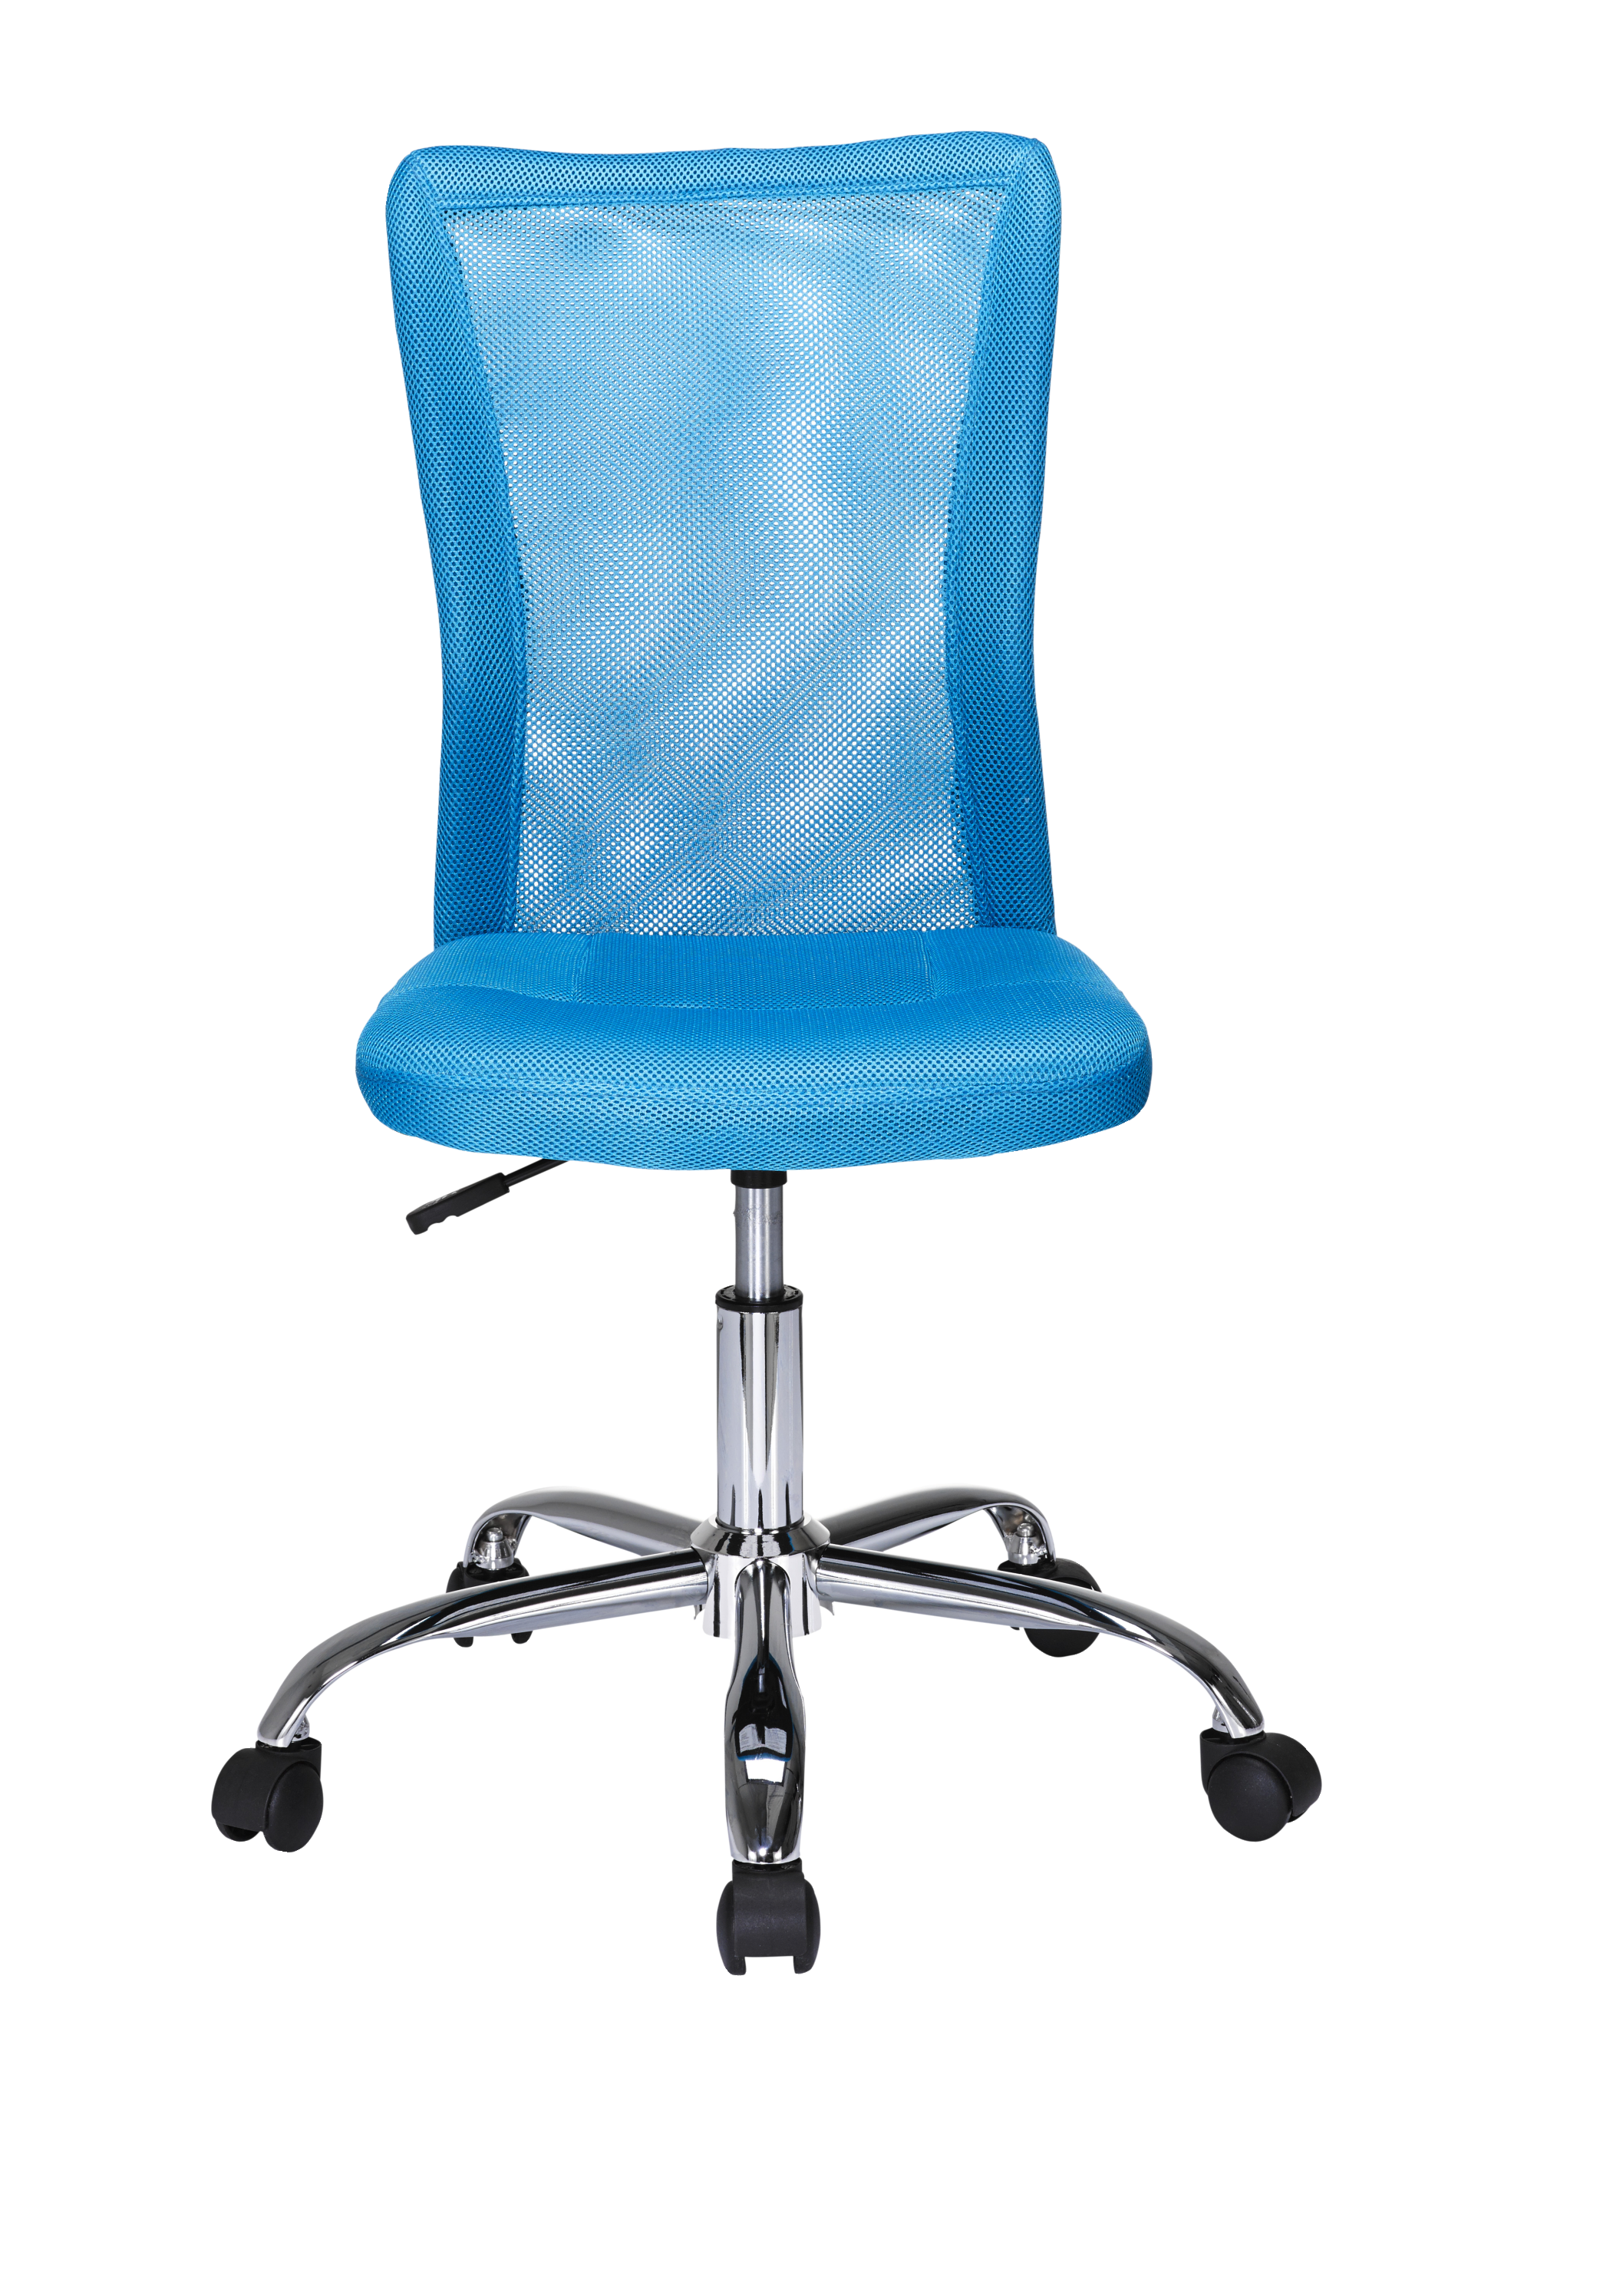 blue task chair. Antrim Mesh Task Chair Blue. More Colour For My Office, With